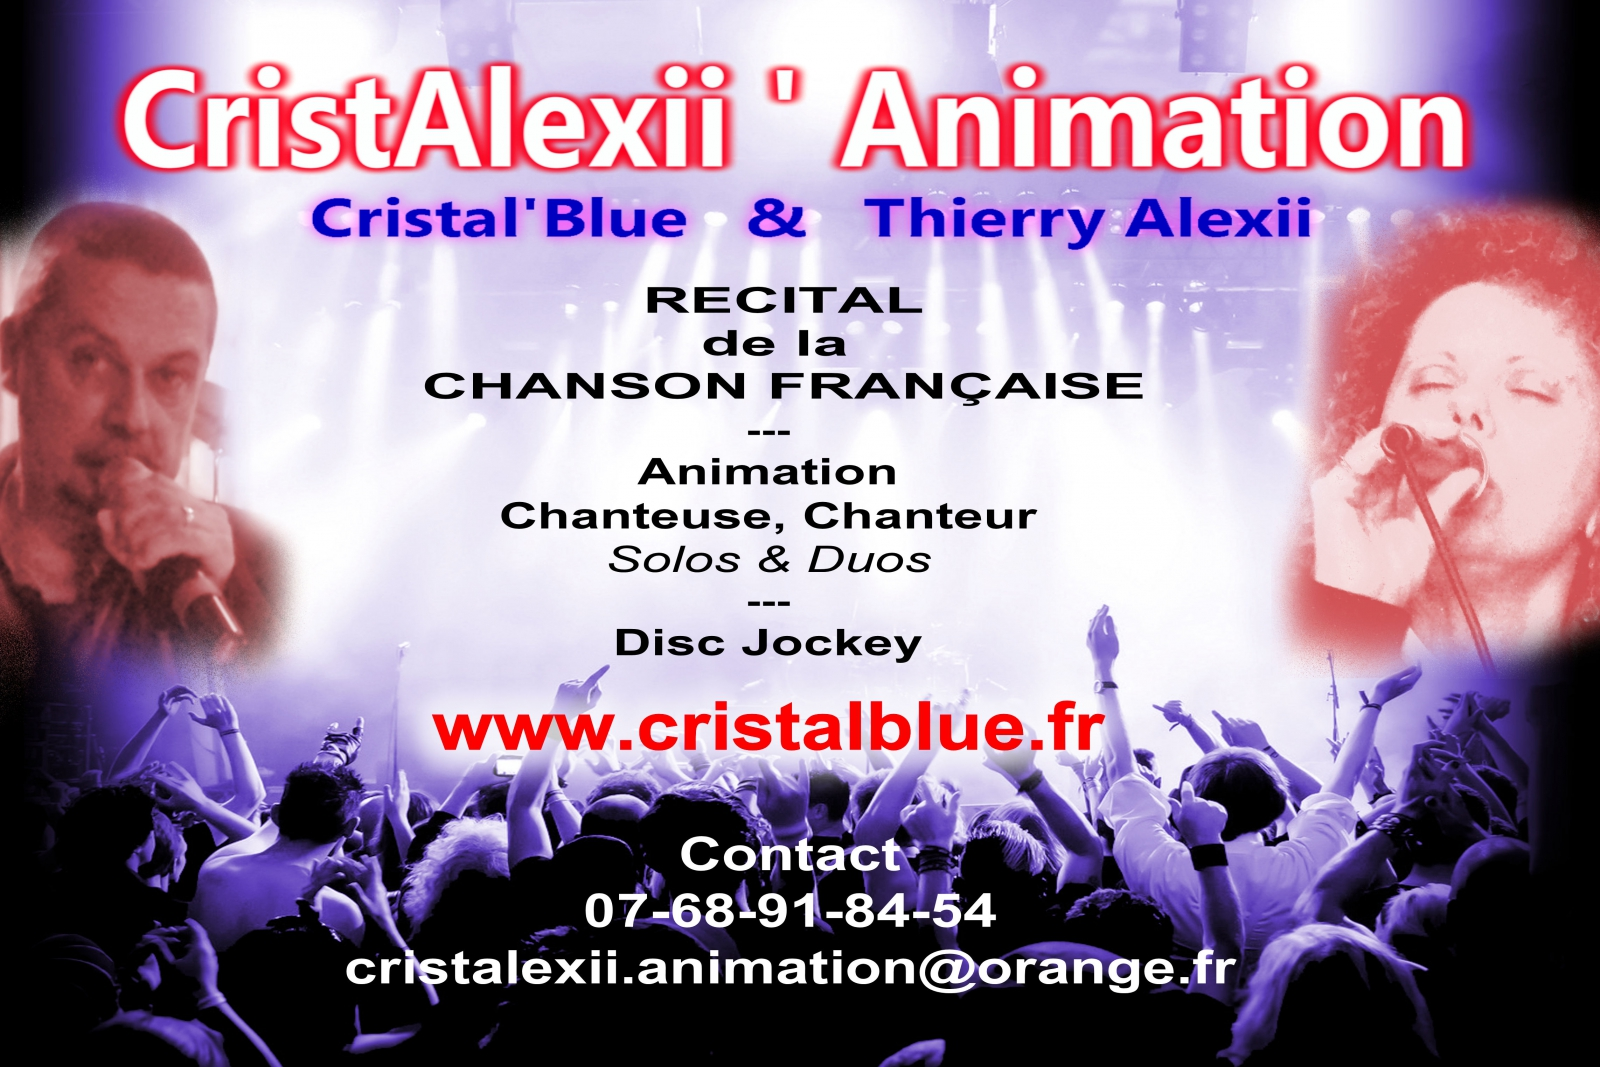 Cristal'Blue & Thierry Alexii